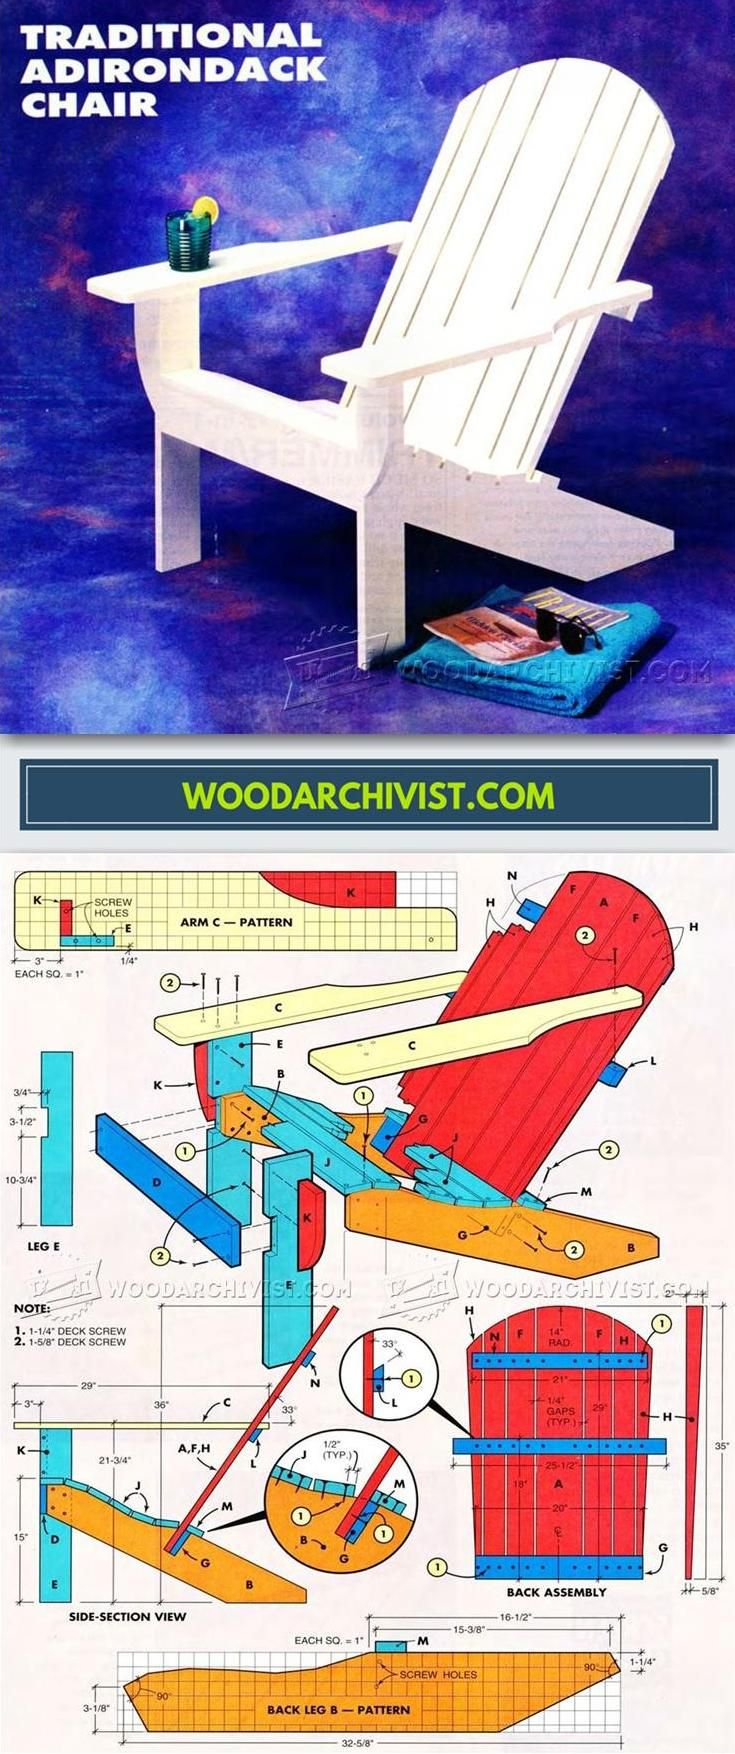 Traditional Adirondack Chair Plans - Outdoor Furniture Plans and Projects | WoodArchivist.com